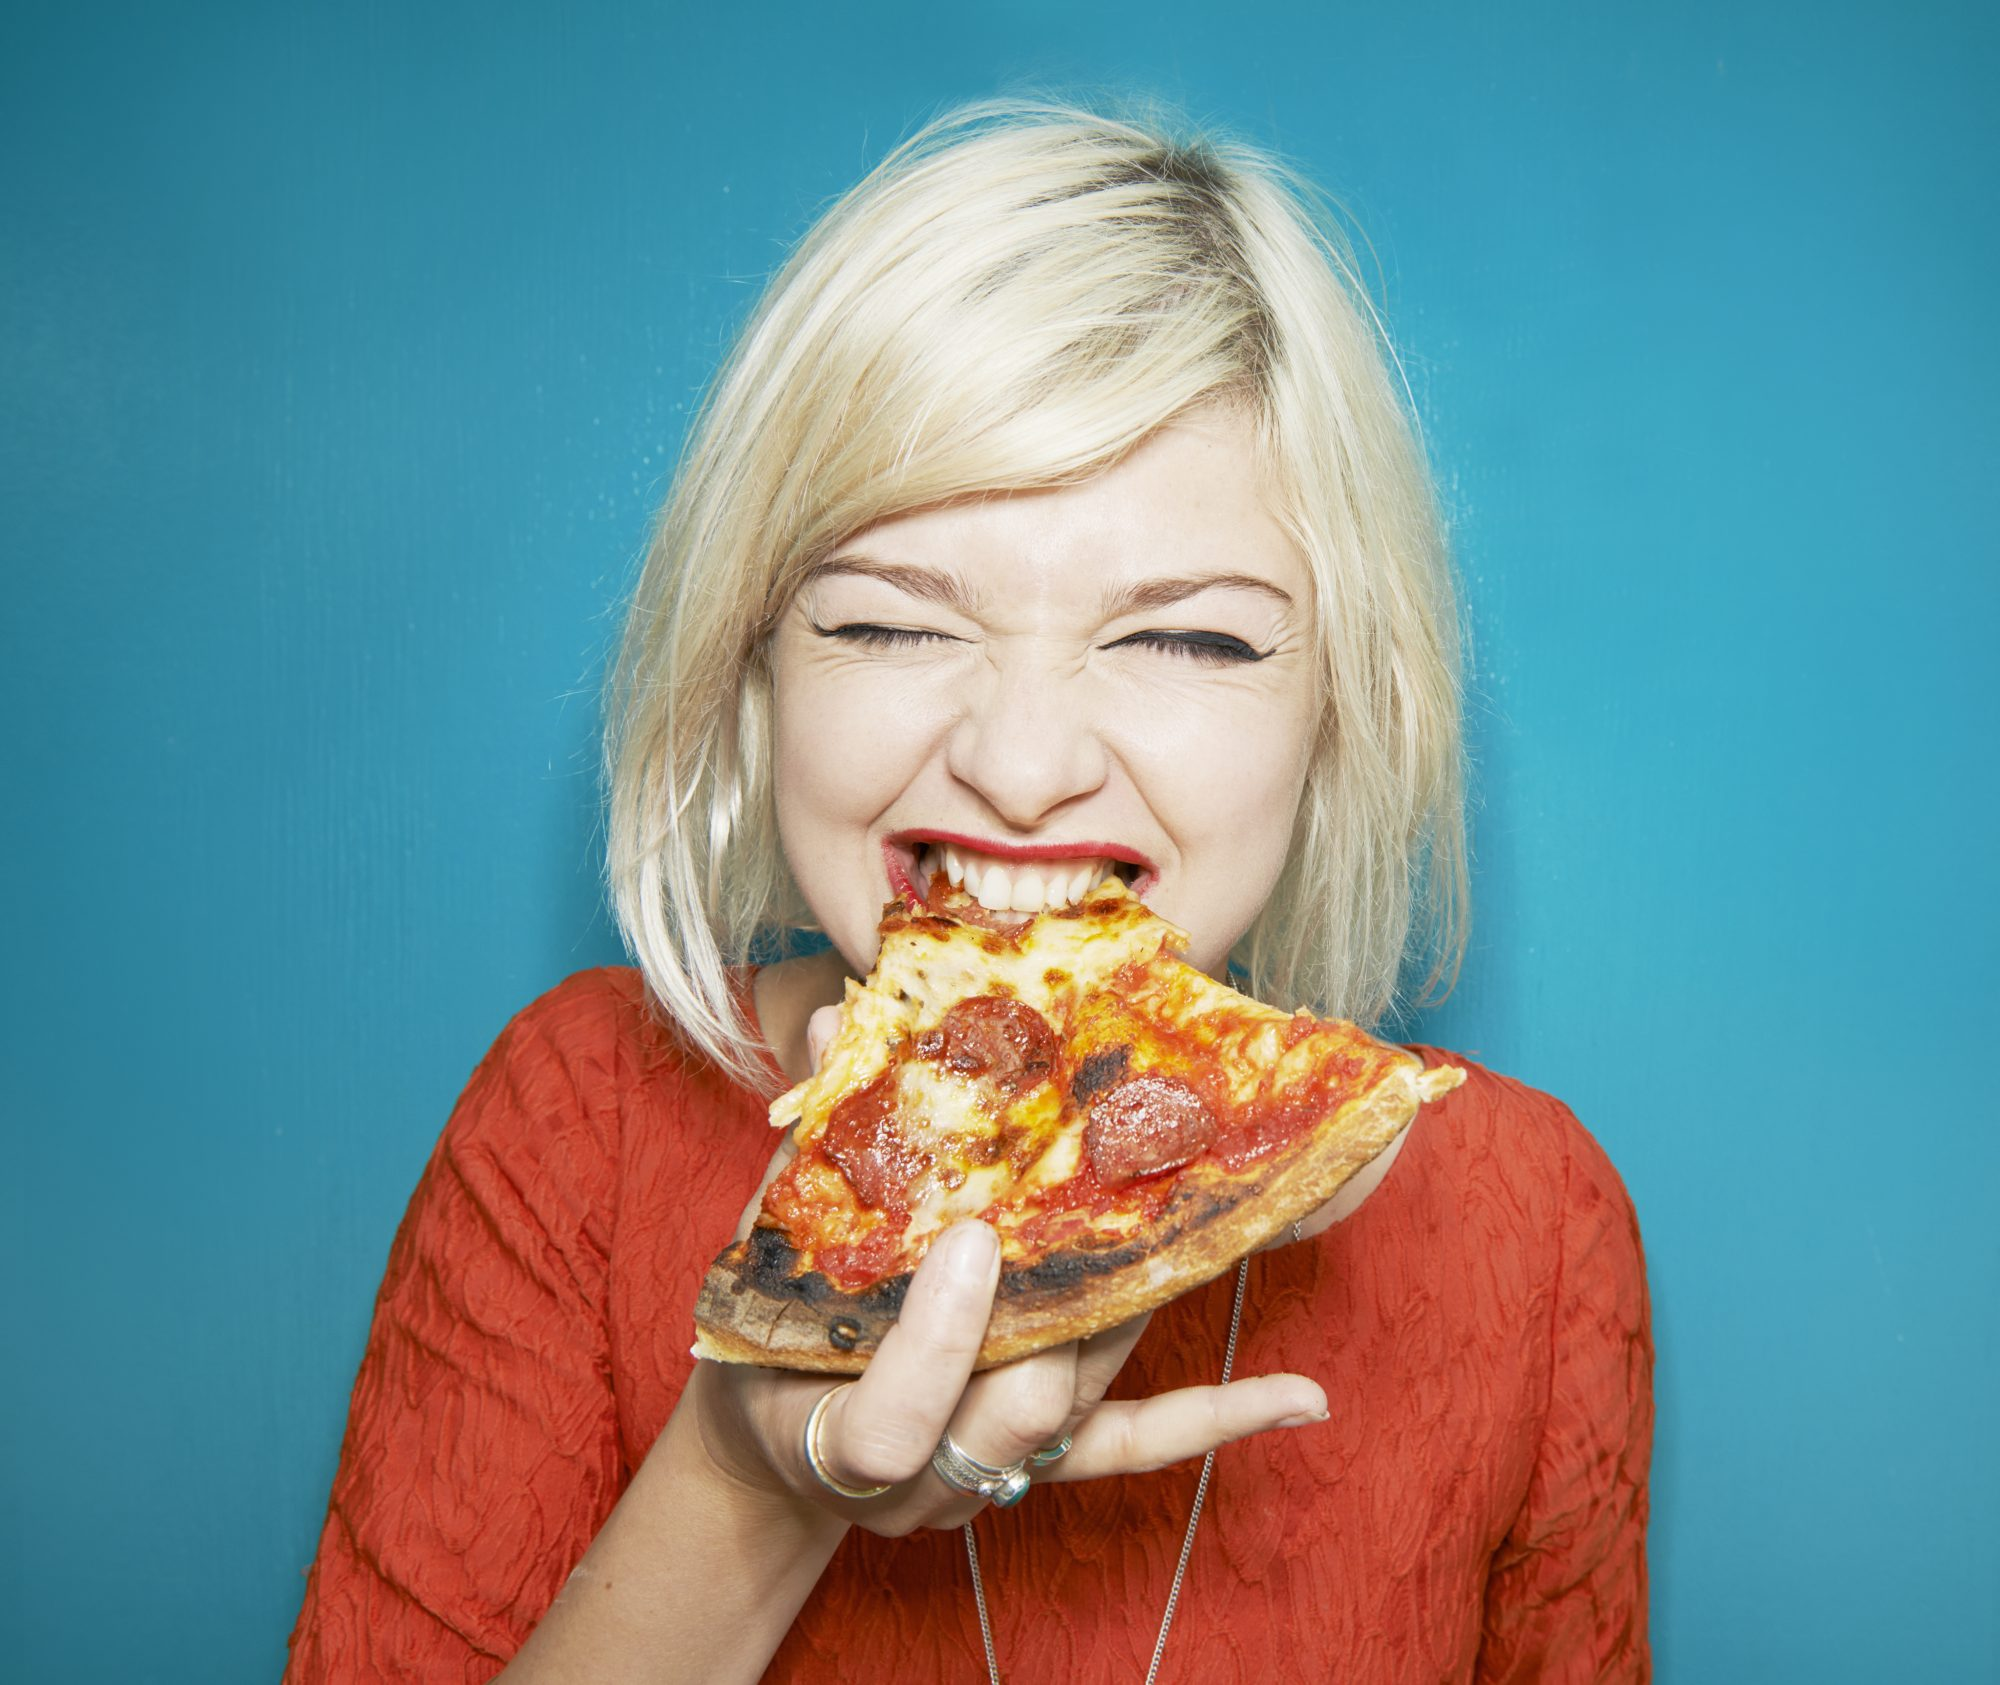 pizza-unhealthy-eating-food-addiction